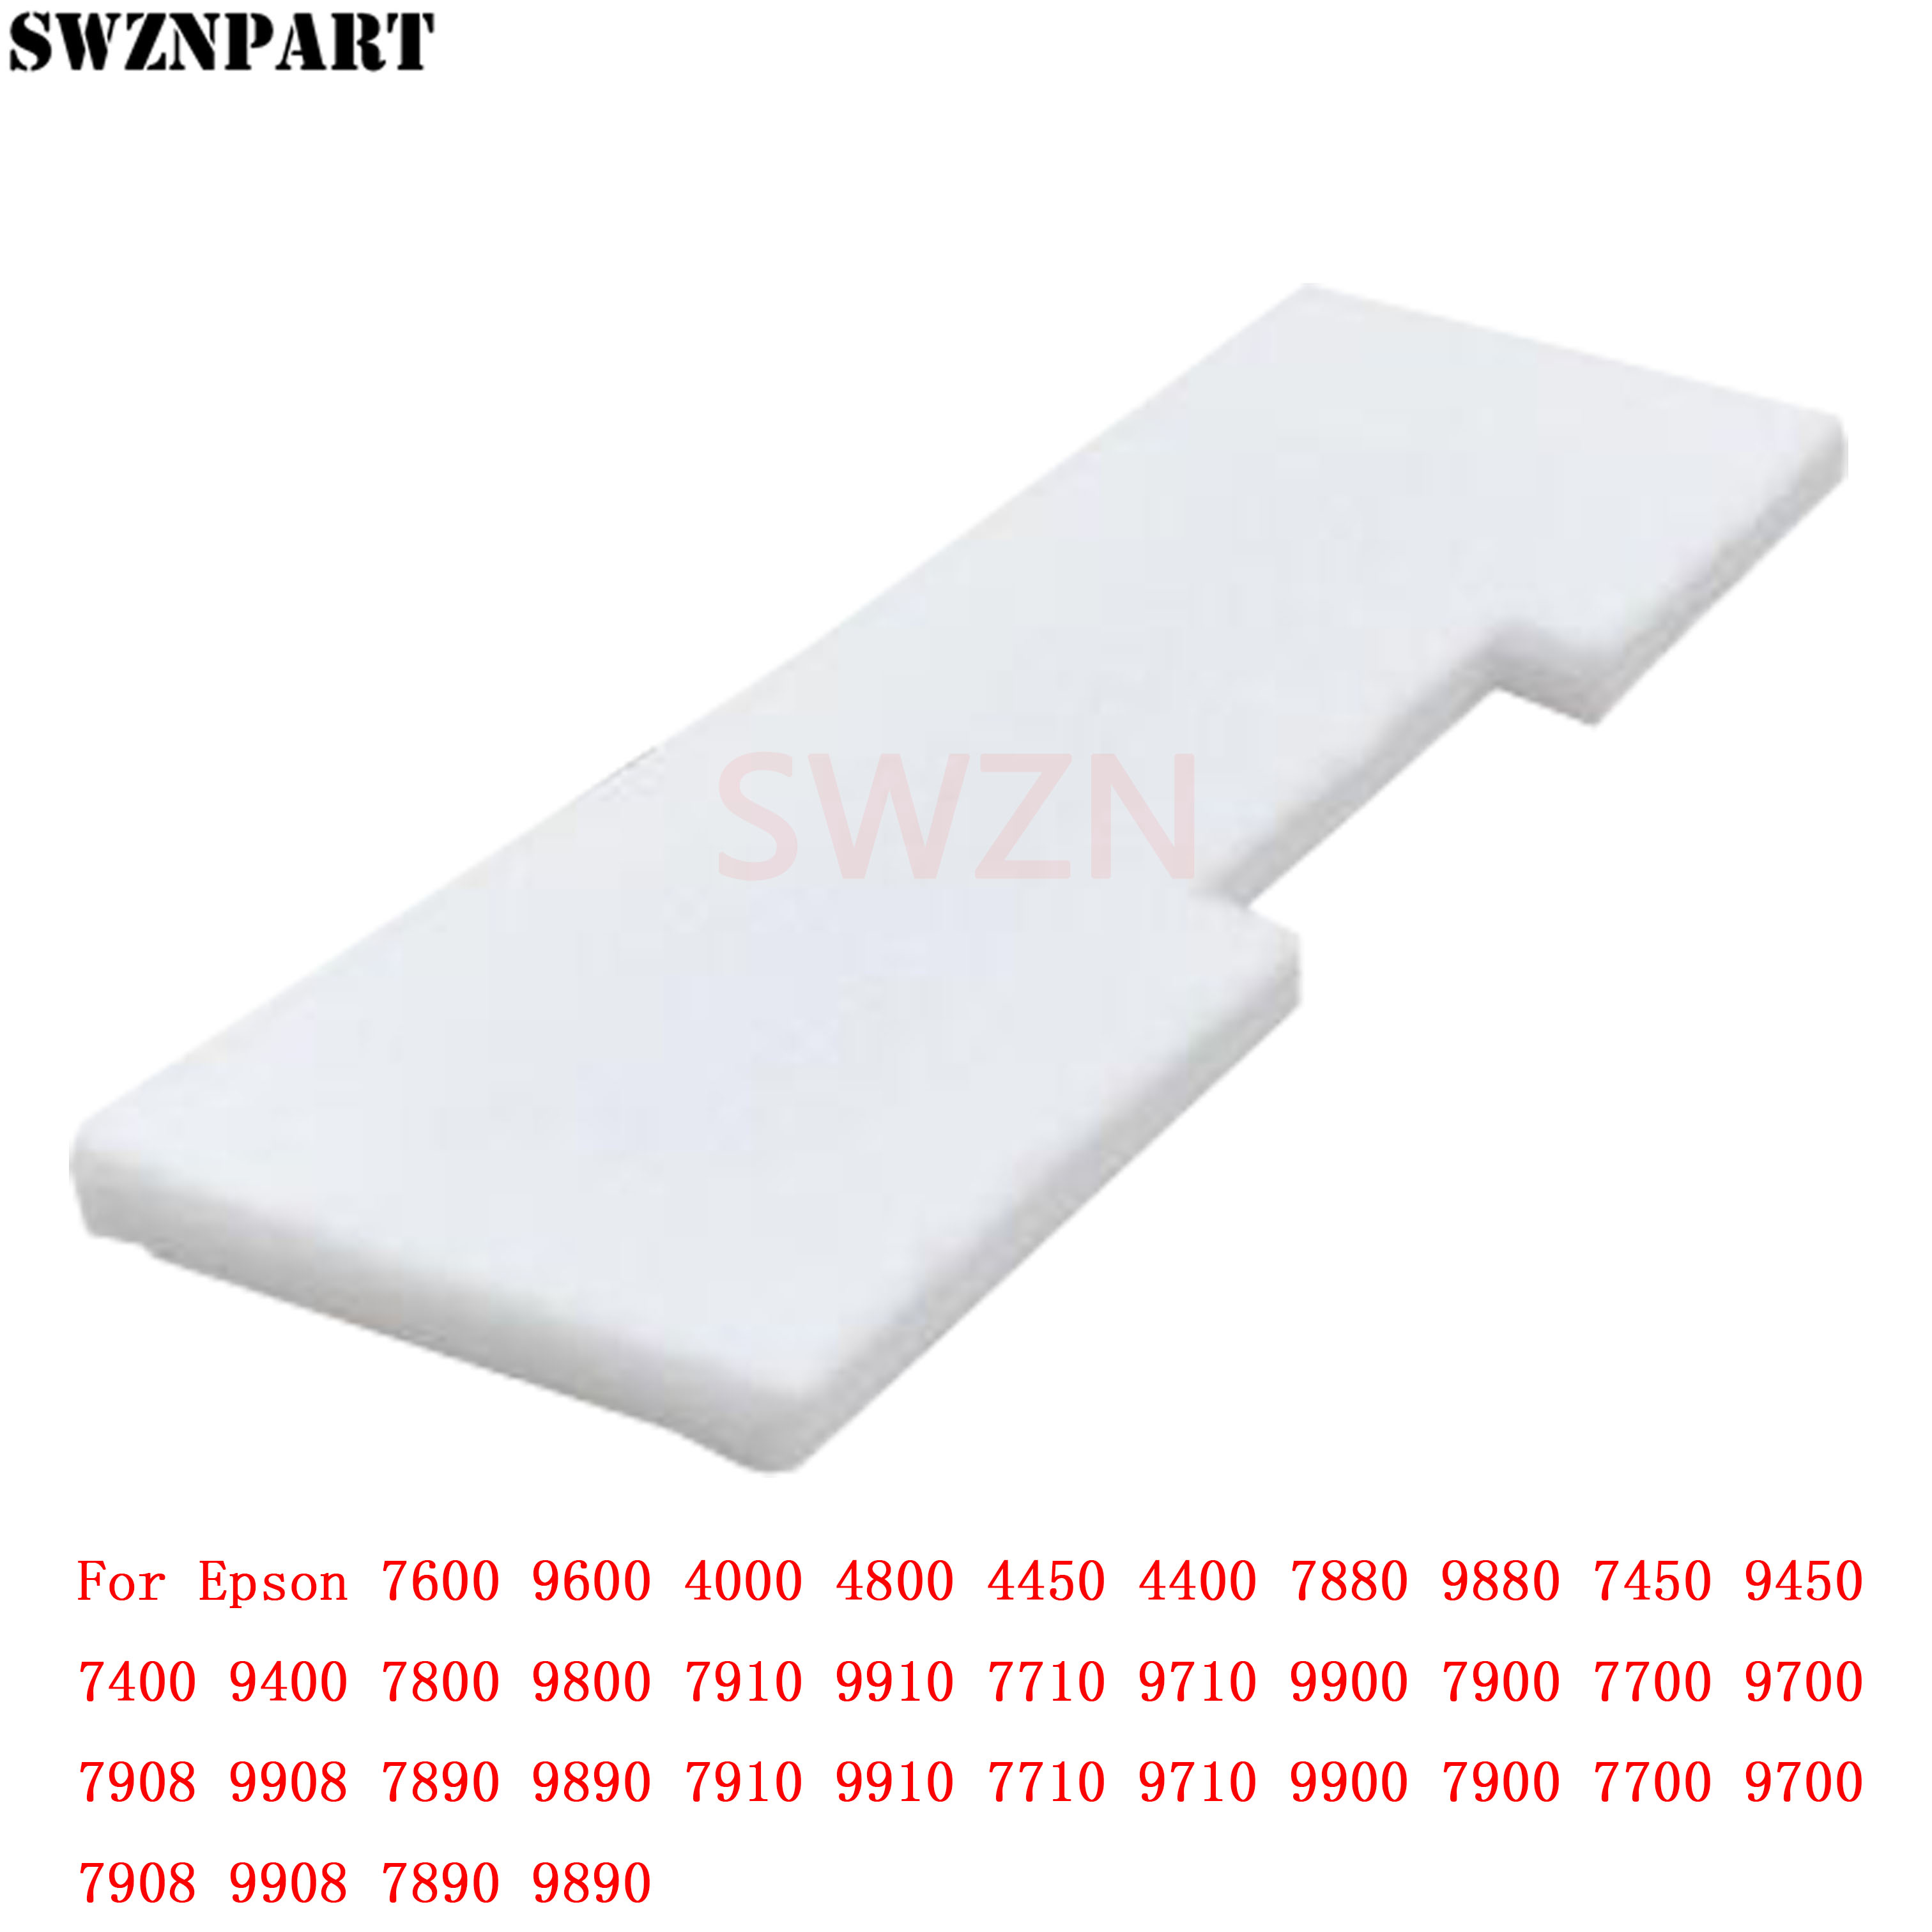 Waste Ink Tank Pad Sponge for <font><b>Epson</b></font> <font><b>7600</b></font> <font><b>9600</b></font> 4000 4800 4880 4450 4400 7880 9880 7450 9450 7400 9400 7800 9800 7910 9910 7710 image